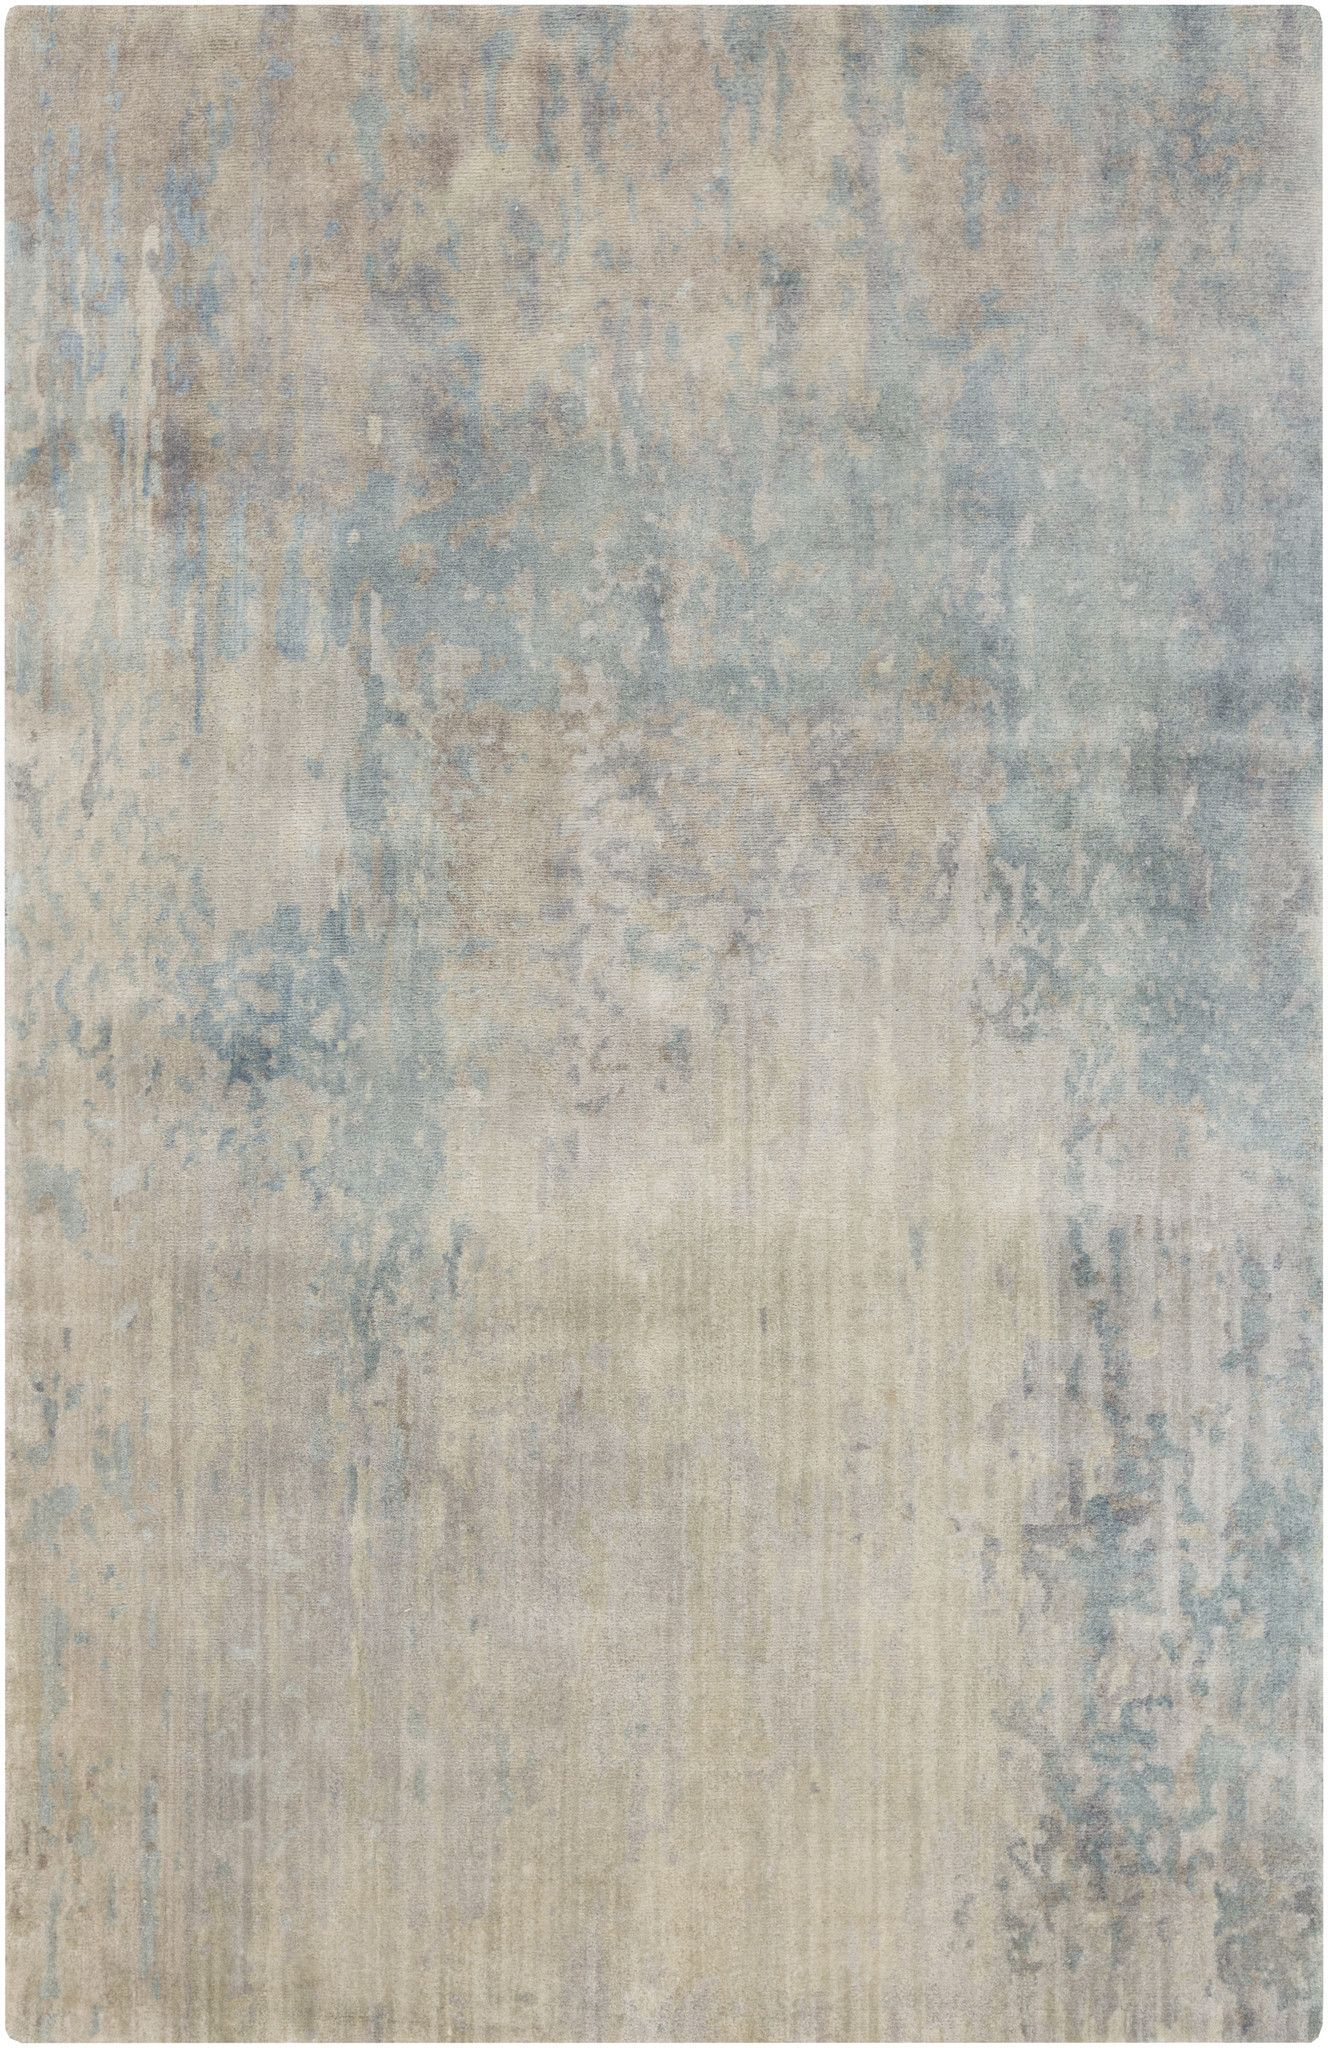 Surya Blowout Sale Up To 70 Off Wat5000 23 Watercolor Area Rug